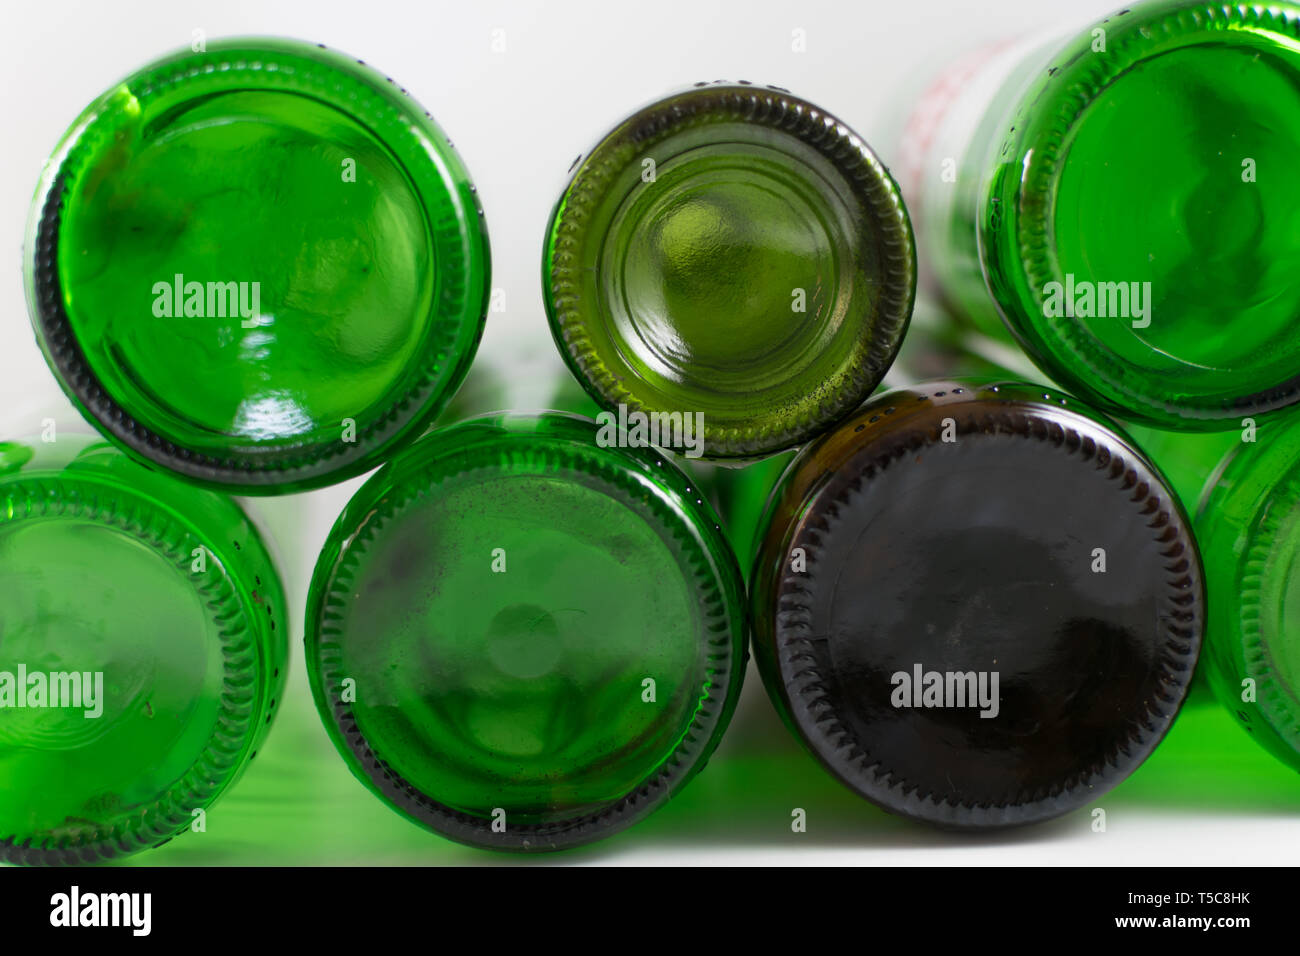 Pack of empty beer and wine green and brown glass bottom bottles, on a white background. Reuse, Eco-Friendly, Environment, Conservation, Sustainable - Stock Image